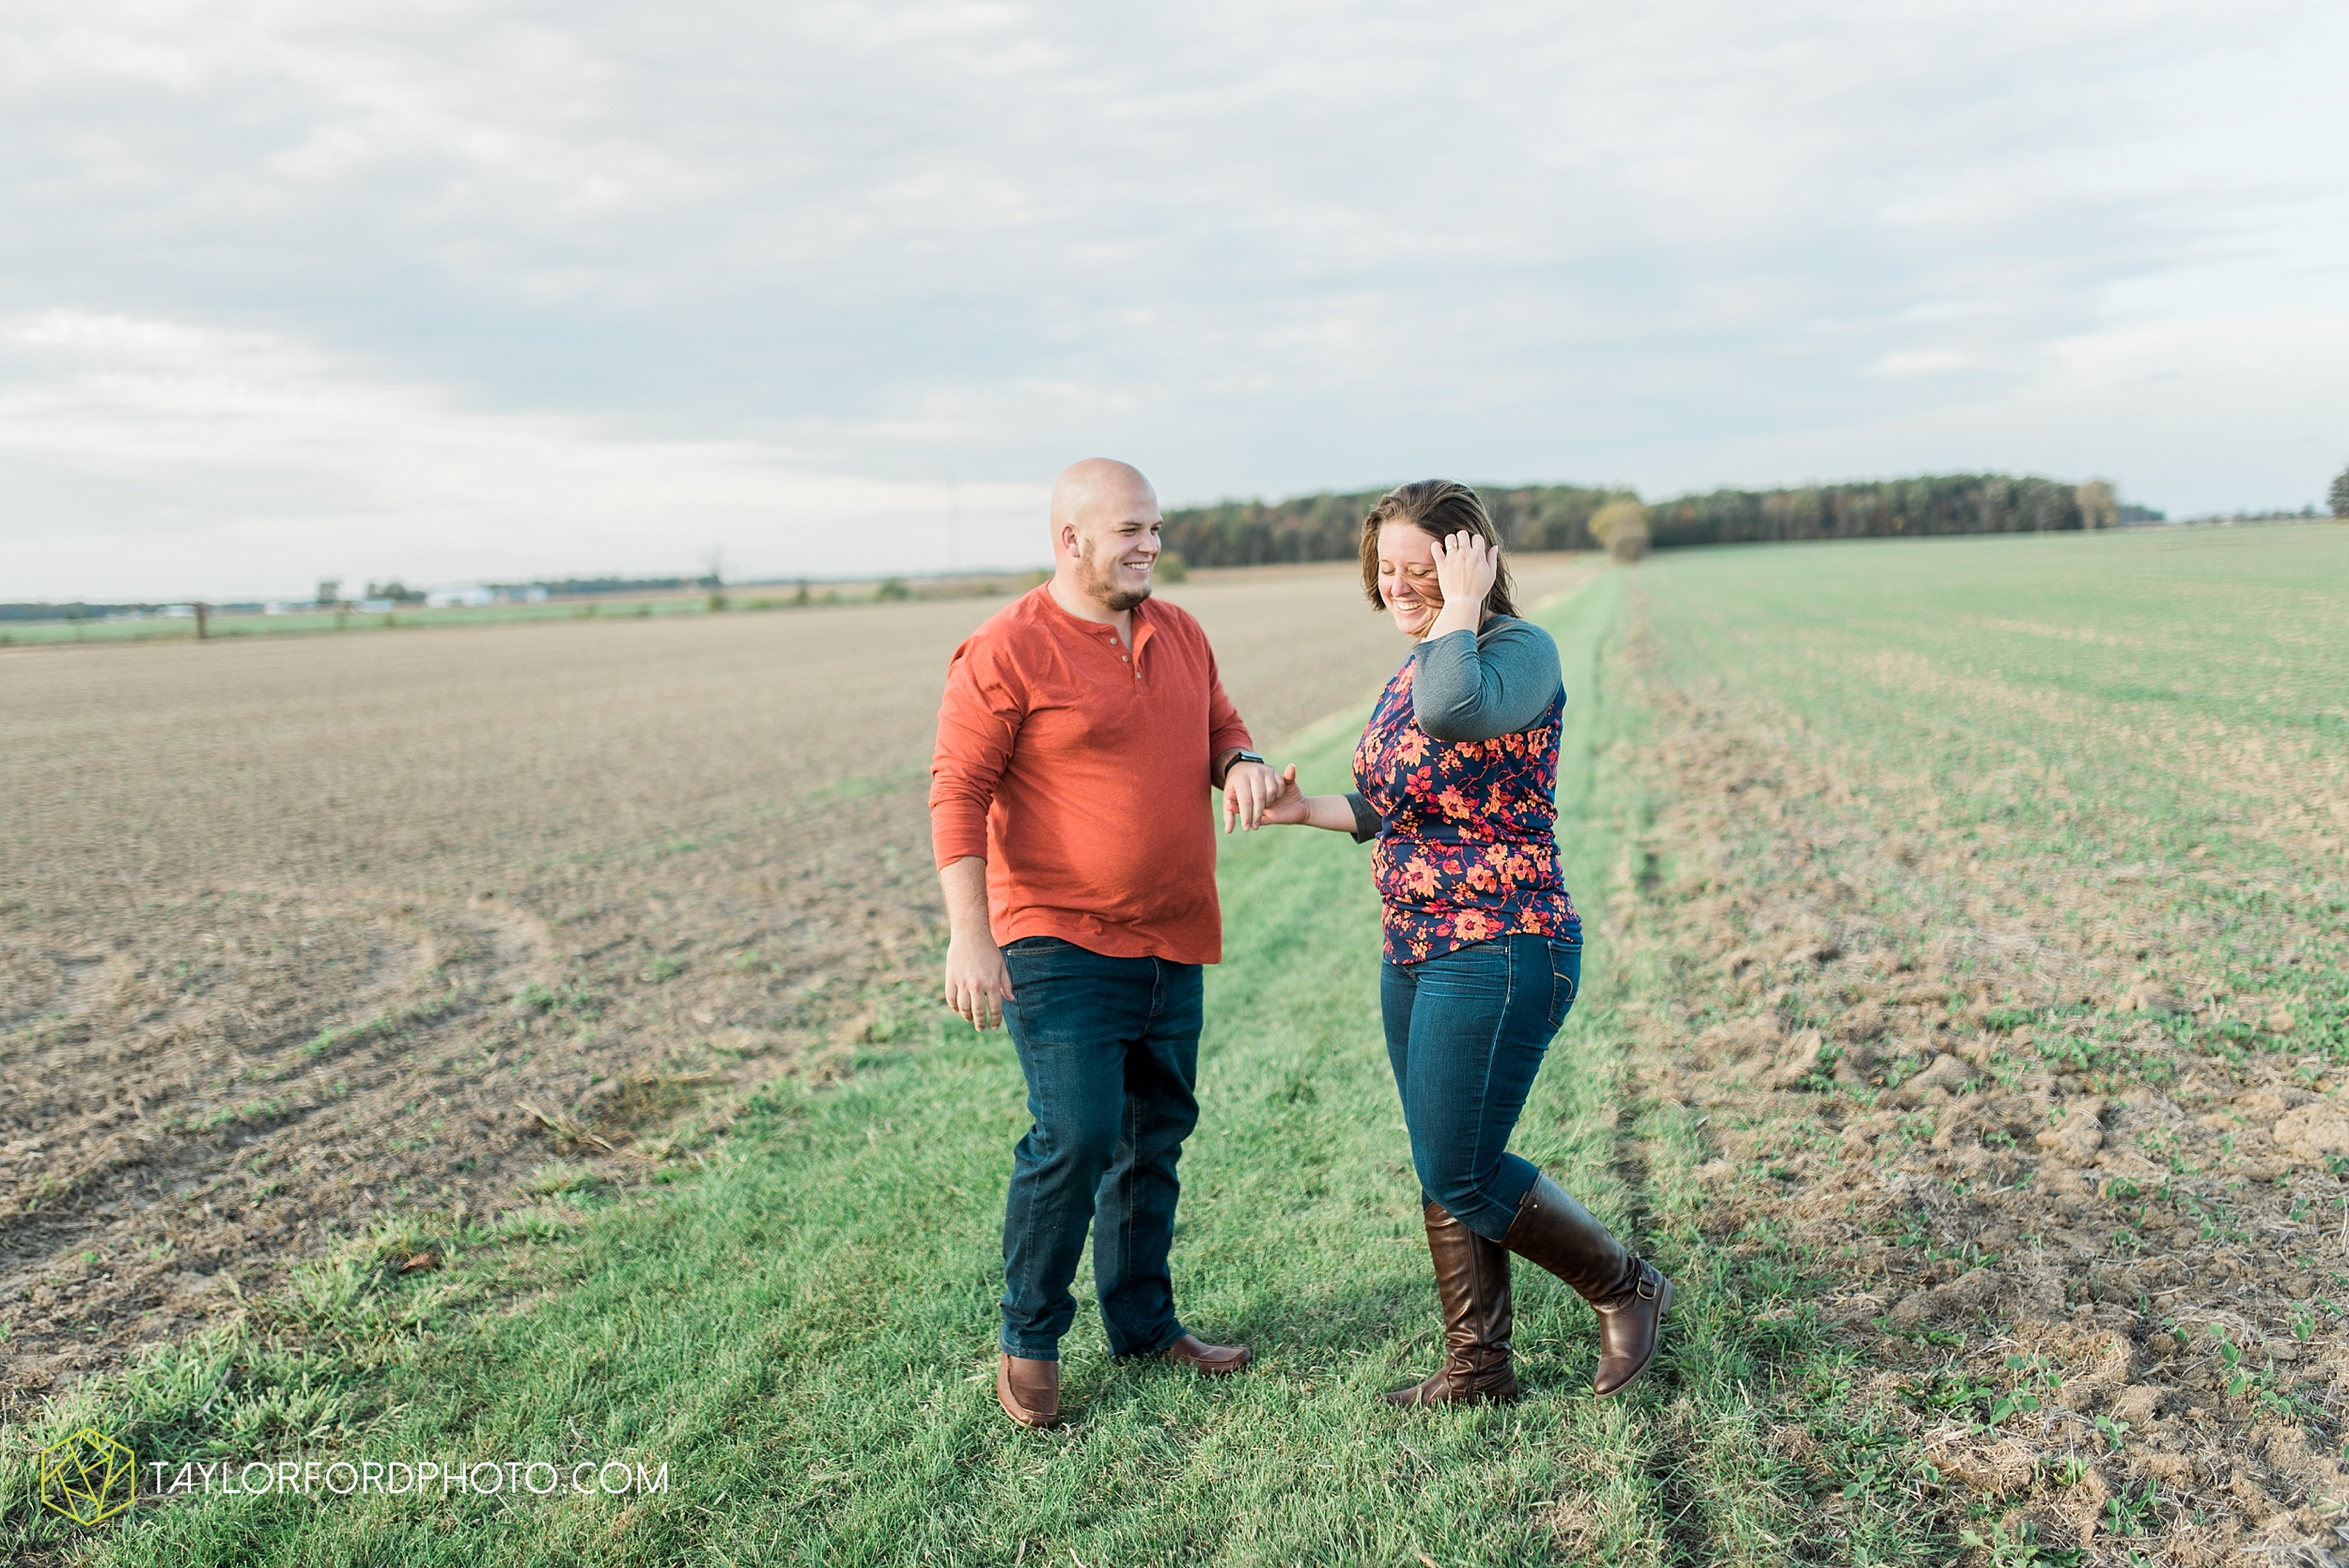 van-wert-ohio-engagement-wedding-photographer-Taylor-Ford-Photography-fall-farm-nature_4150.jpg